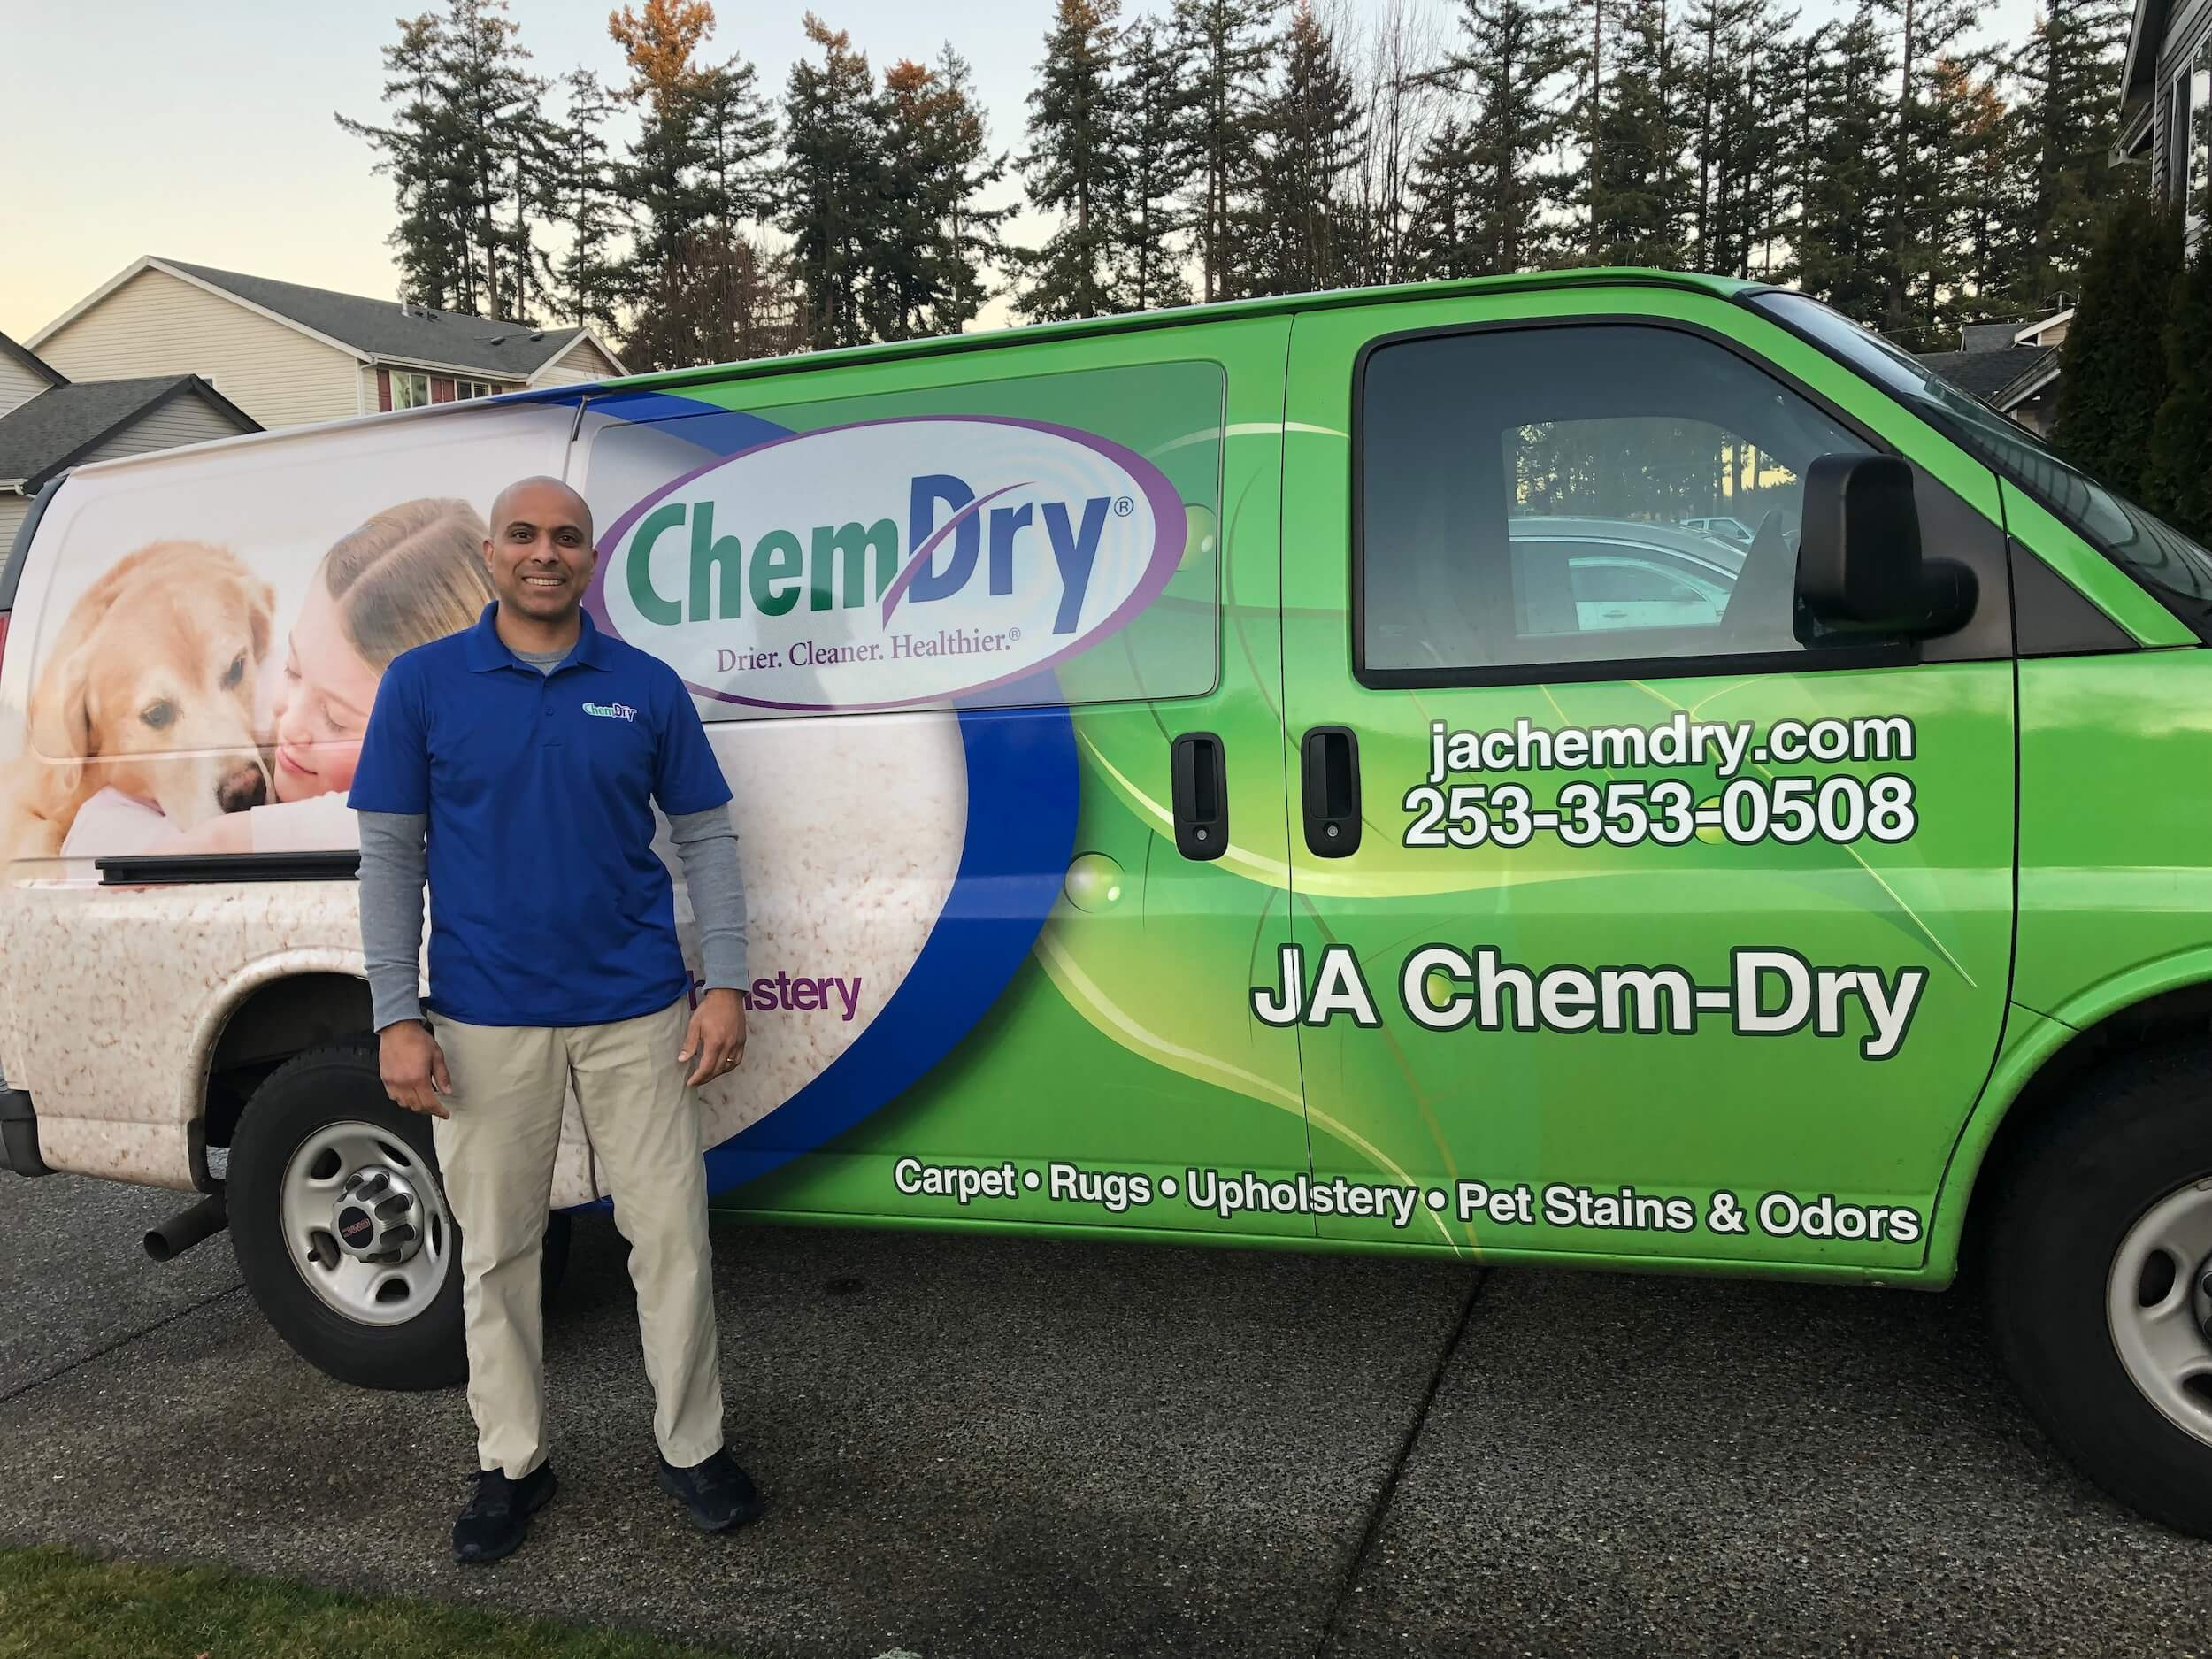 JA Chem-Dry service van and technician preparing for carpet cleaning service